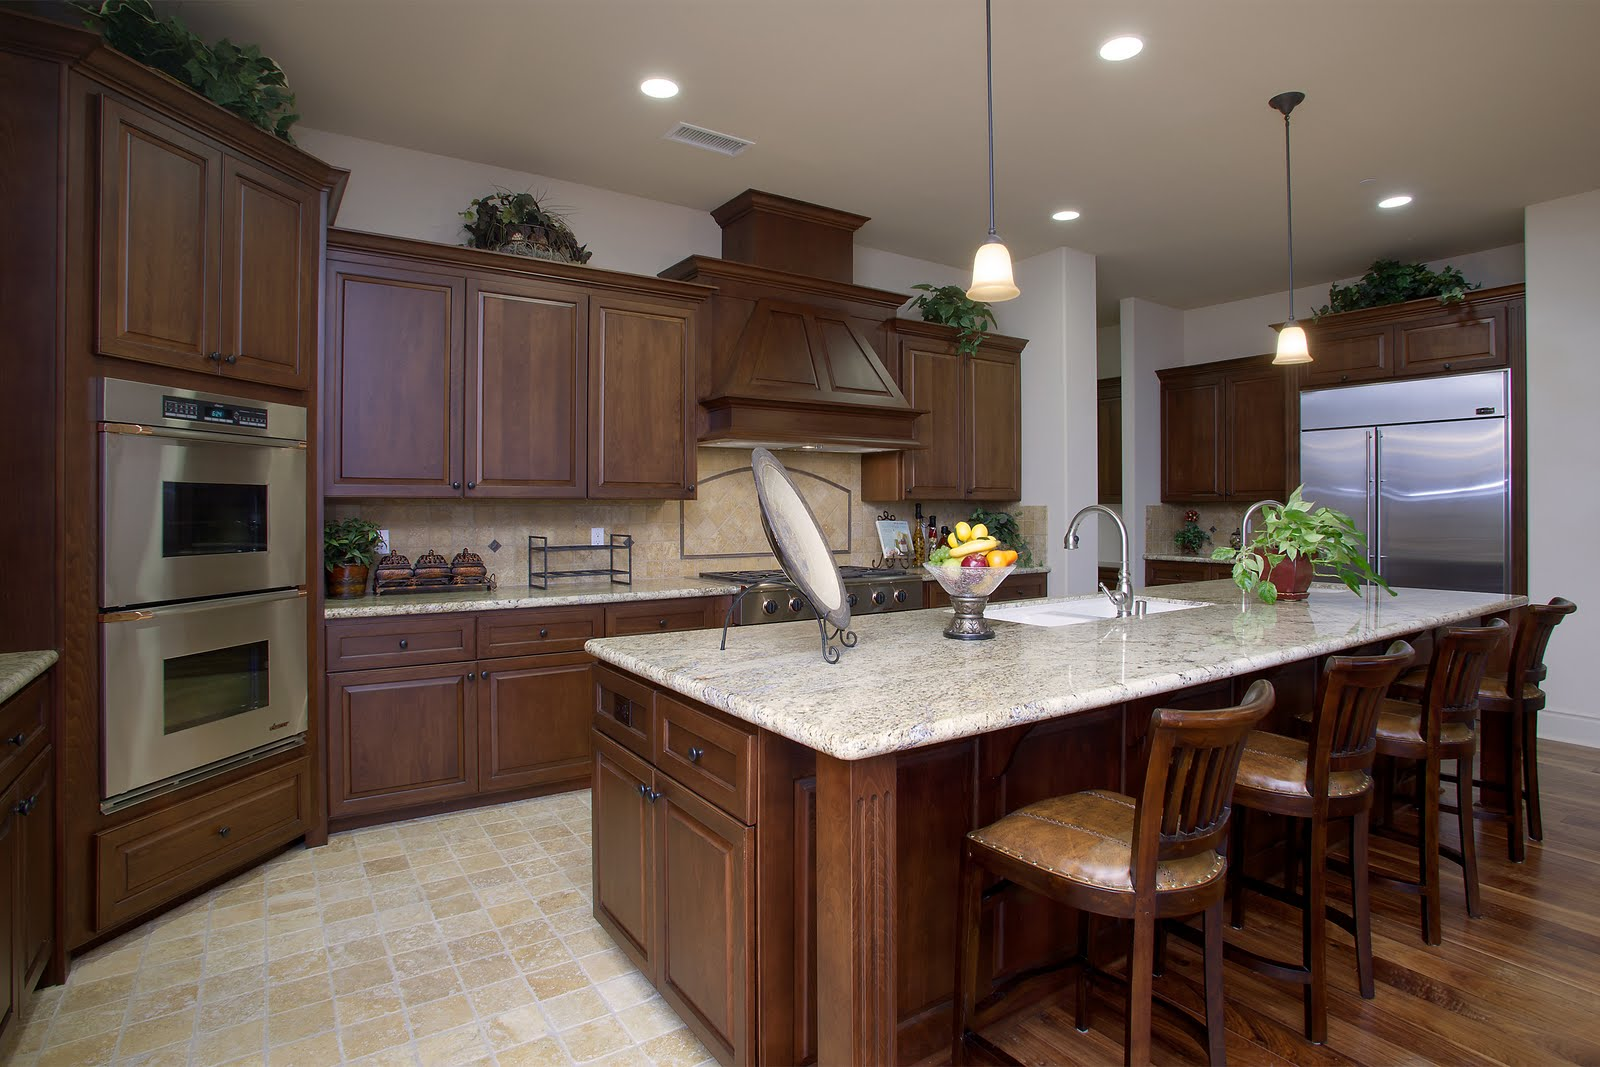 Kitchen model homes kitchen design photos 2015 for House kitchen images